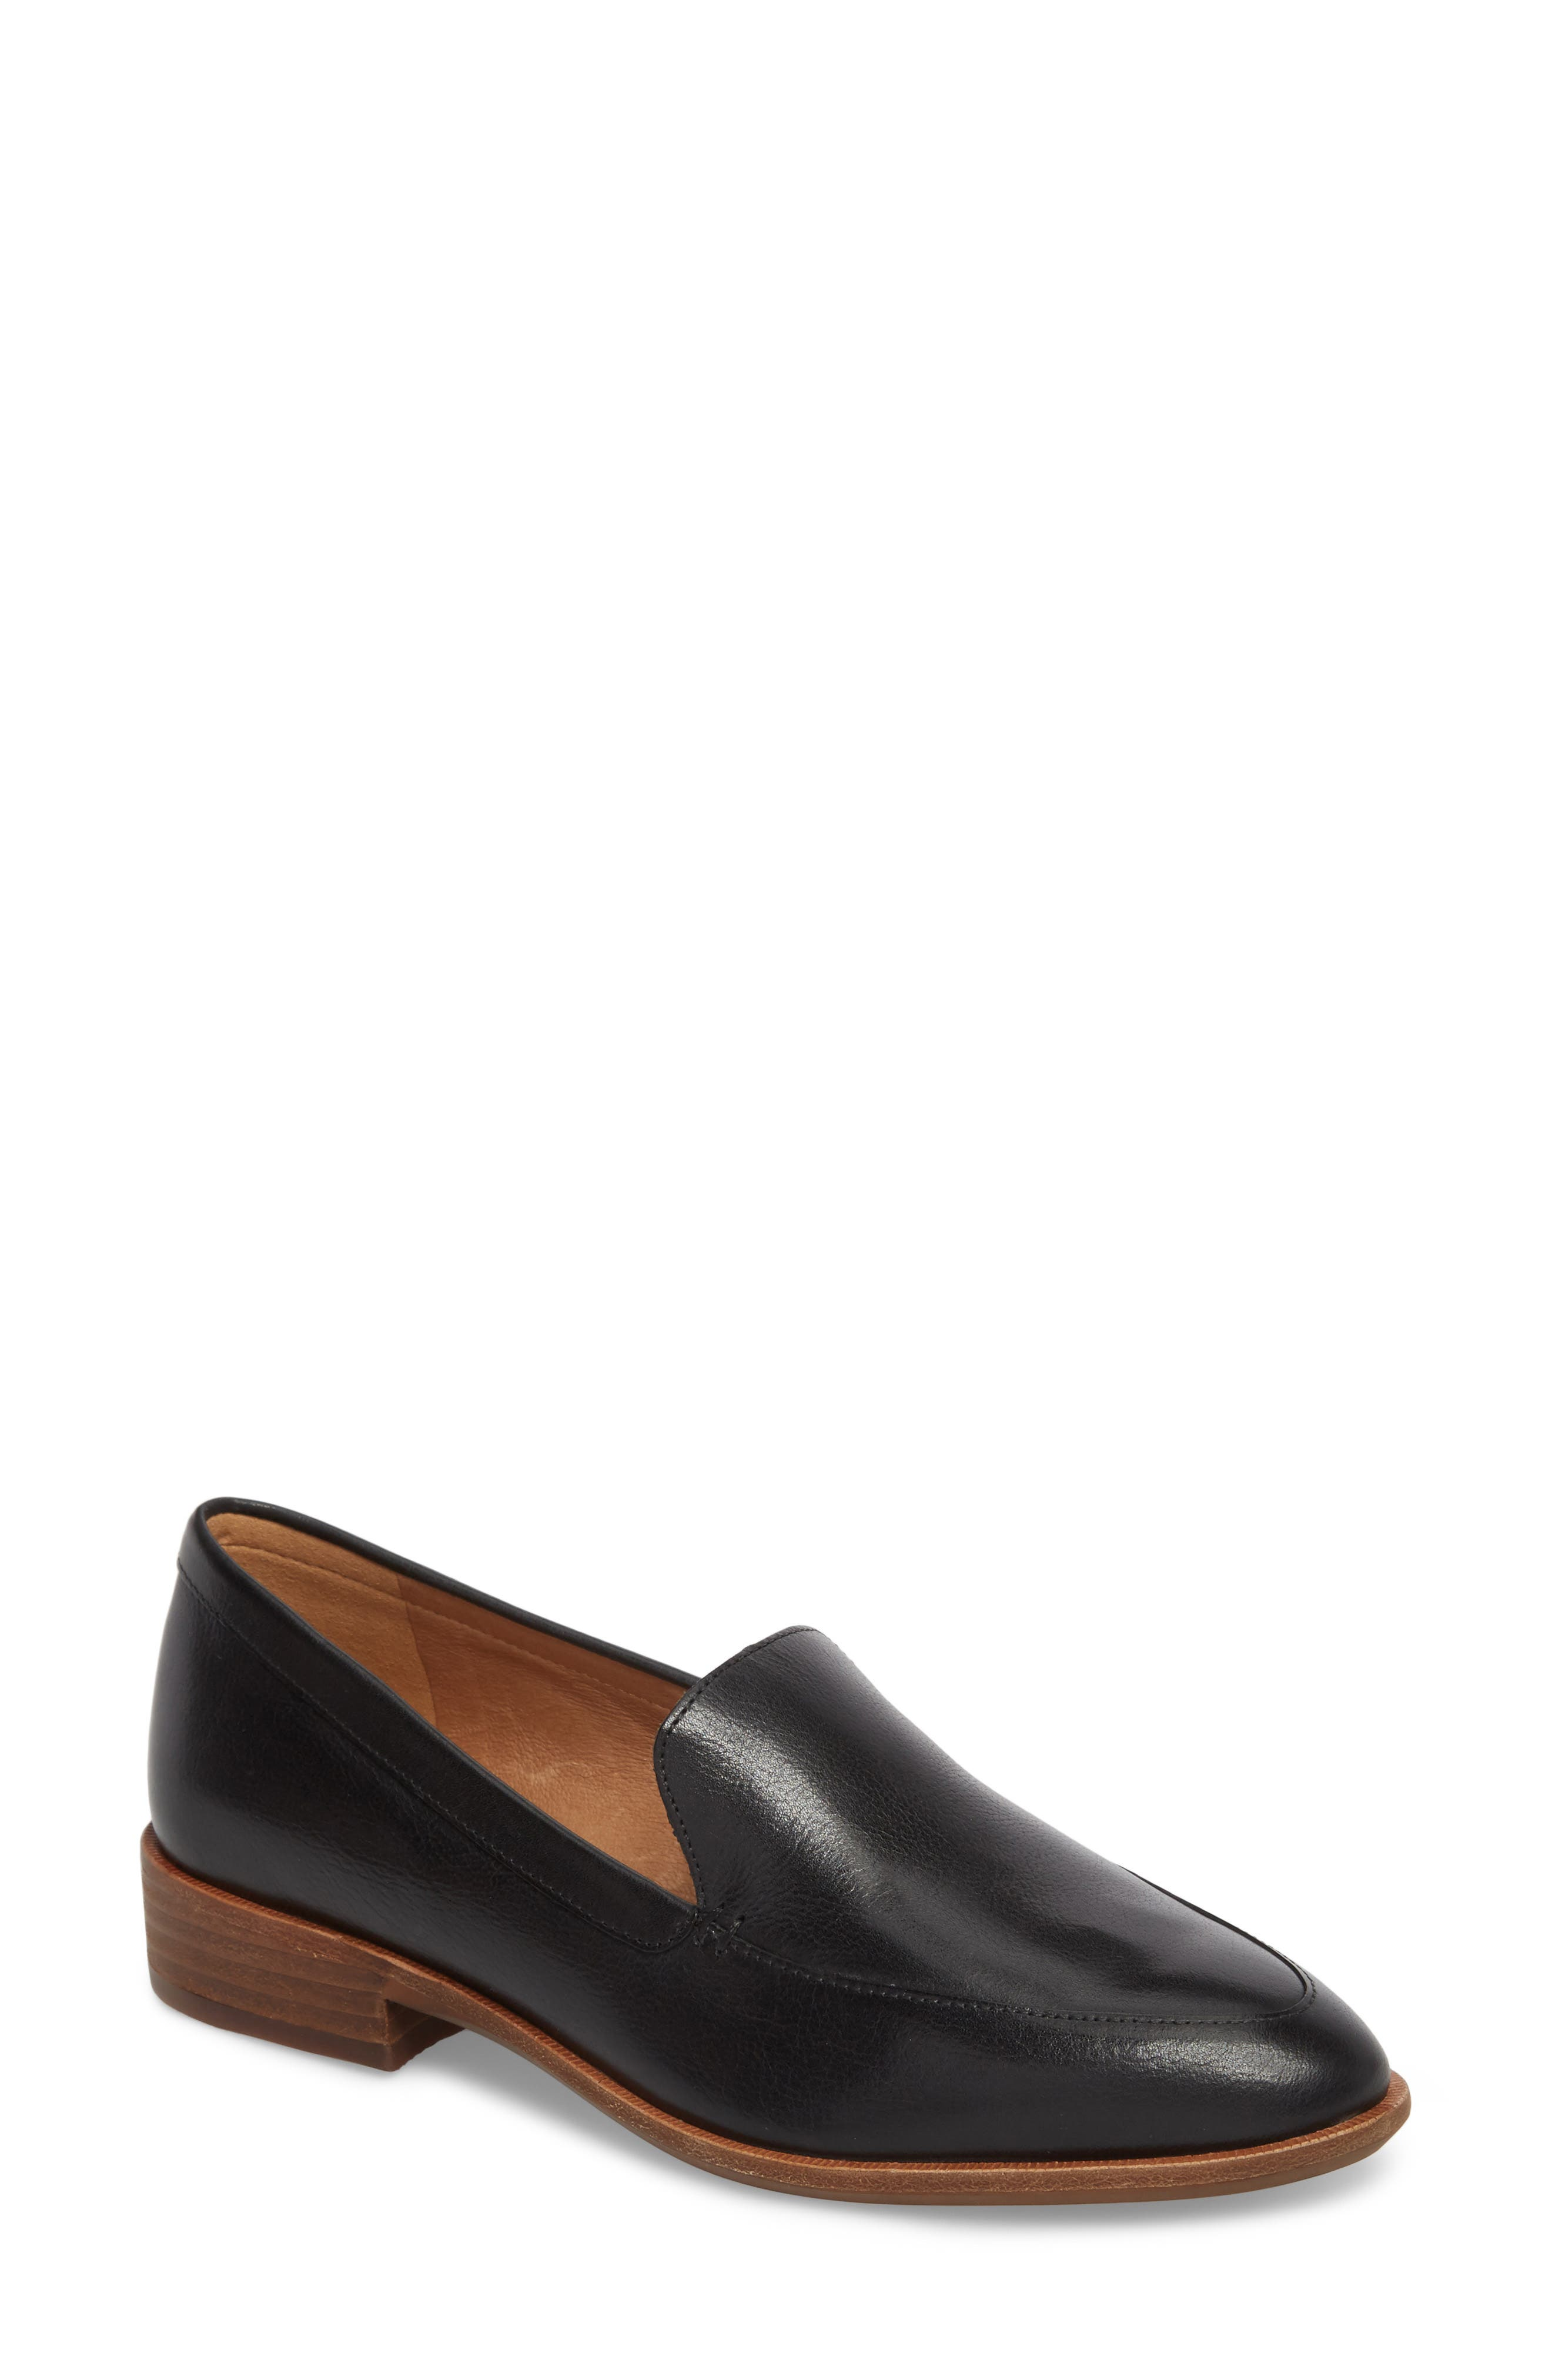 MADEWELL, The Frances Loafer, Main thumbnail 1, color, TRUE BLACK LEATHER